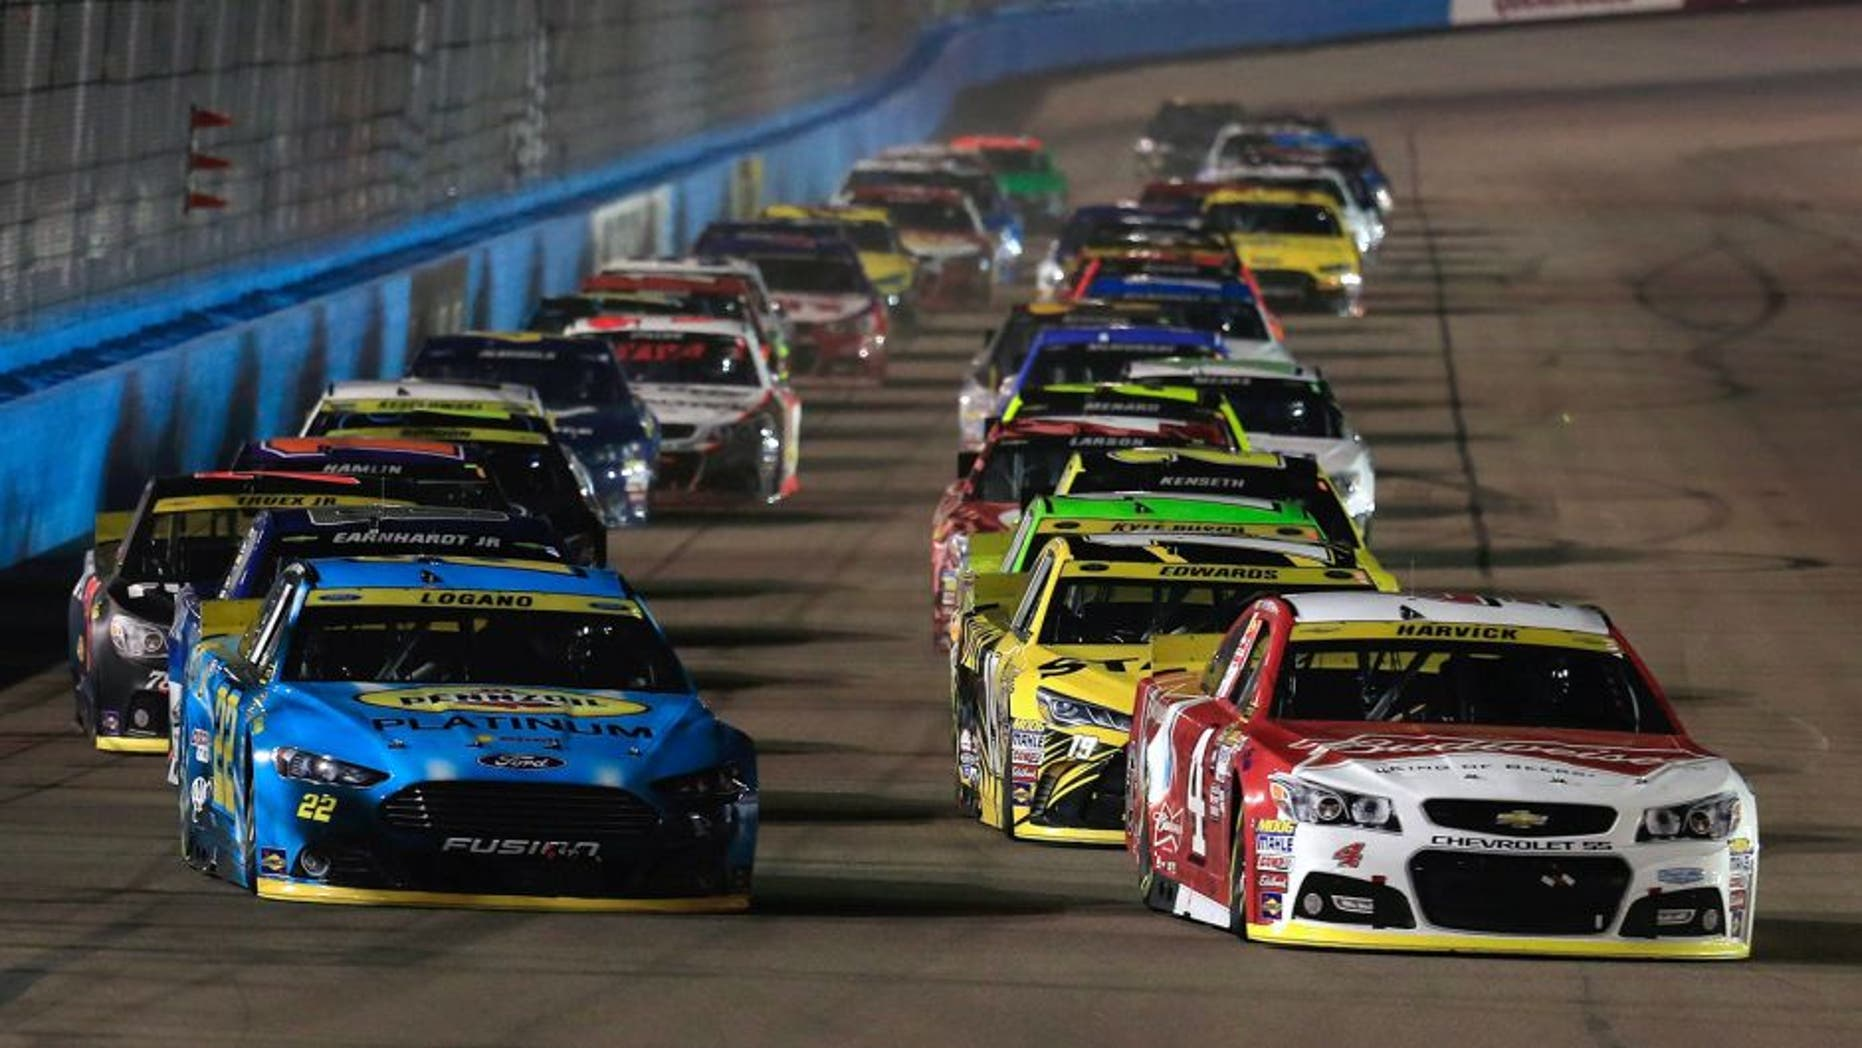 AVONDALE, AZ - NOVEMBER 15: Kurt Busch, driver of the #41 Haas Automation Chevrolet, and Joey Logano, driver of the #22 Pennzoil Ford, lead the field during the NASCAR Sprint Cup Series Quicken Loans Race for Heroes 500 at Phoenix International Raceway on November 15, 2015 in Avondale, Arizona. (Photo by Chris Trotman/Getty Images)